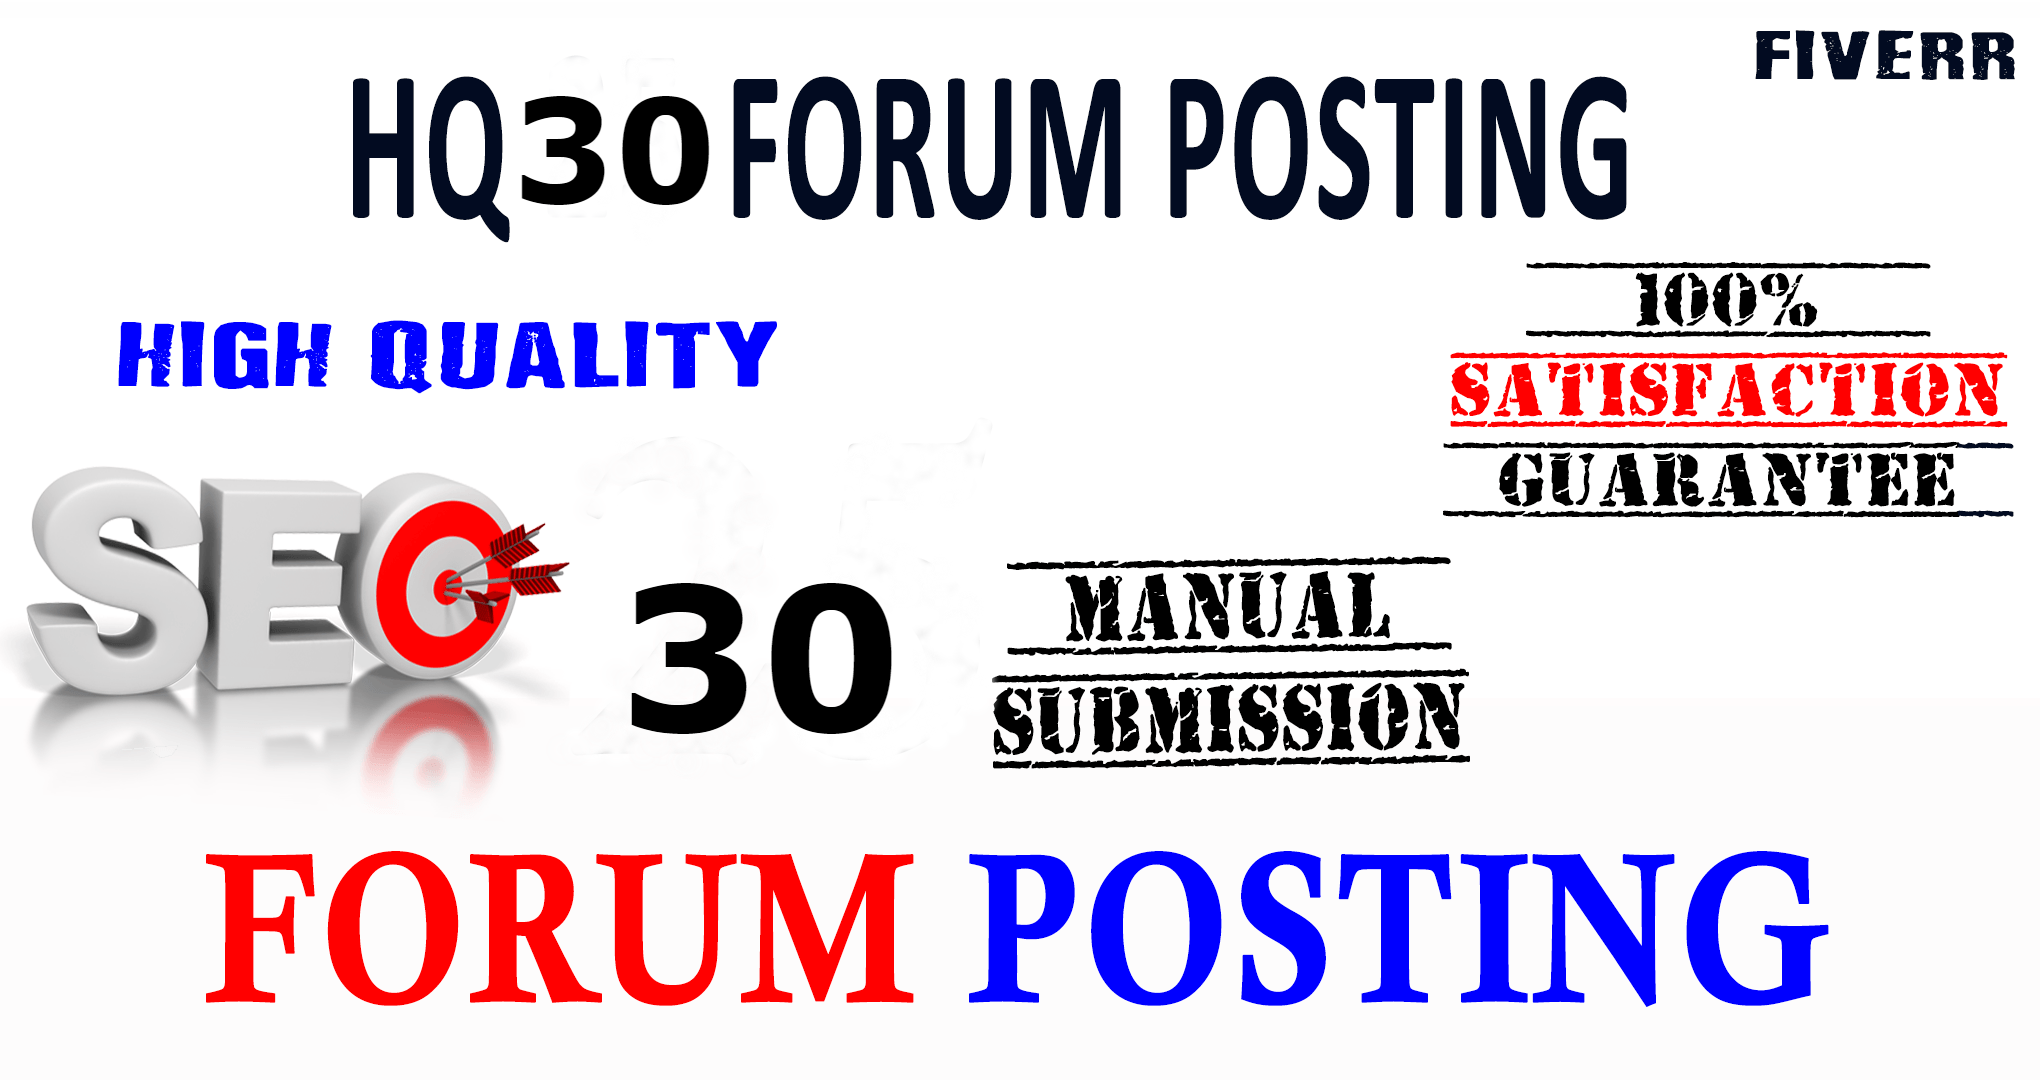 I wil Provide 30 General Forum Posting for your website